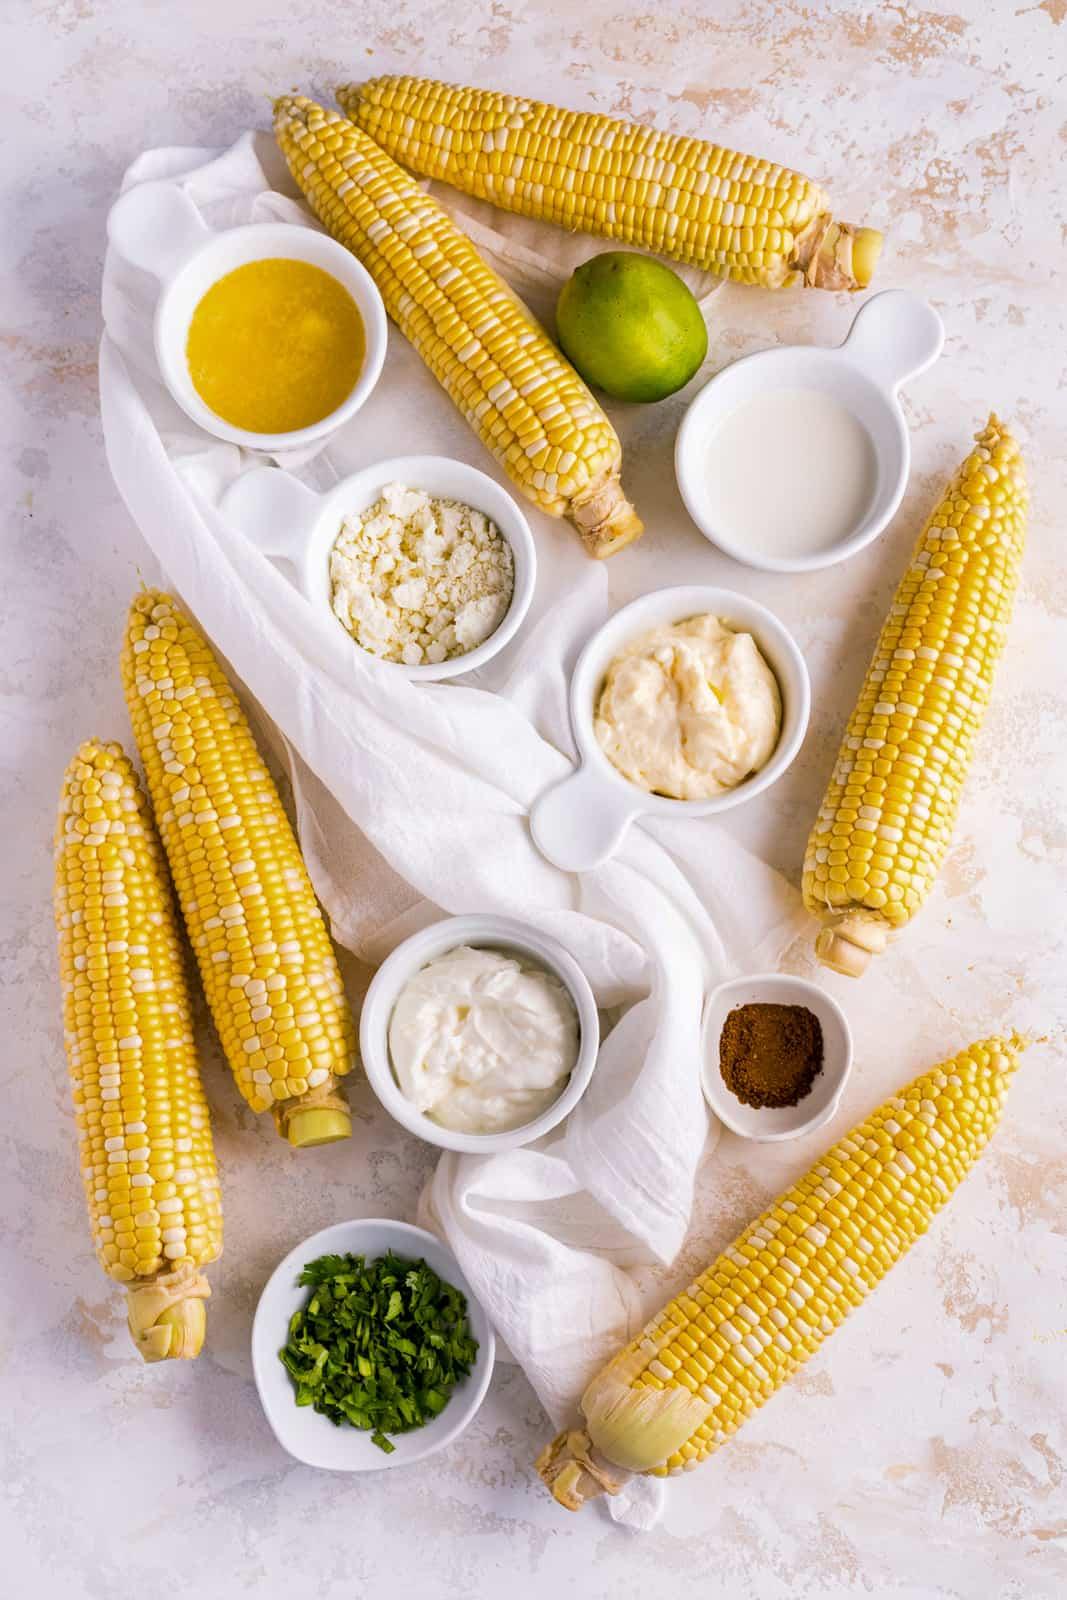 Ingredients needed to make a Mexican Street Corn Recipe